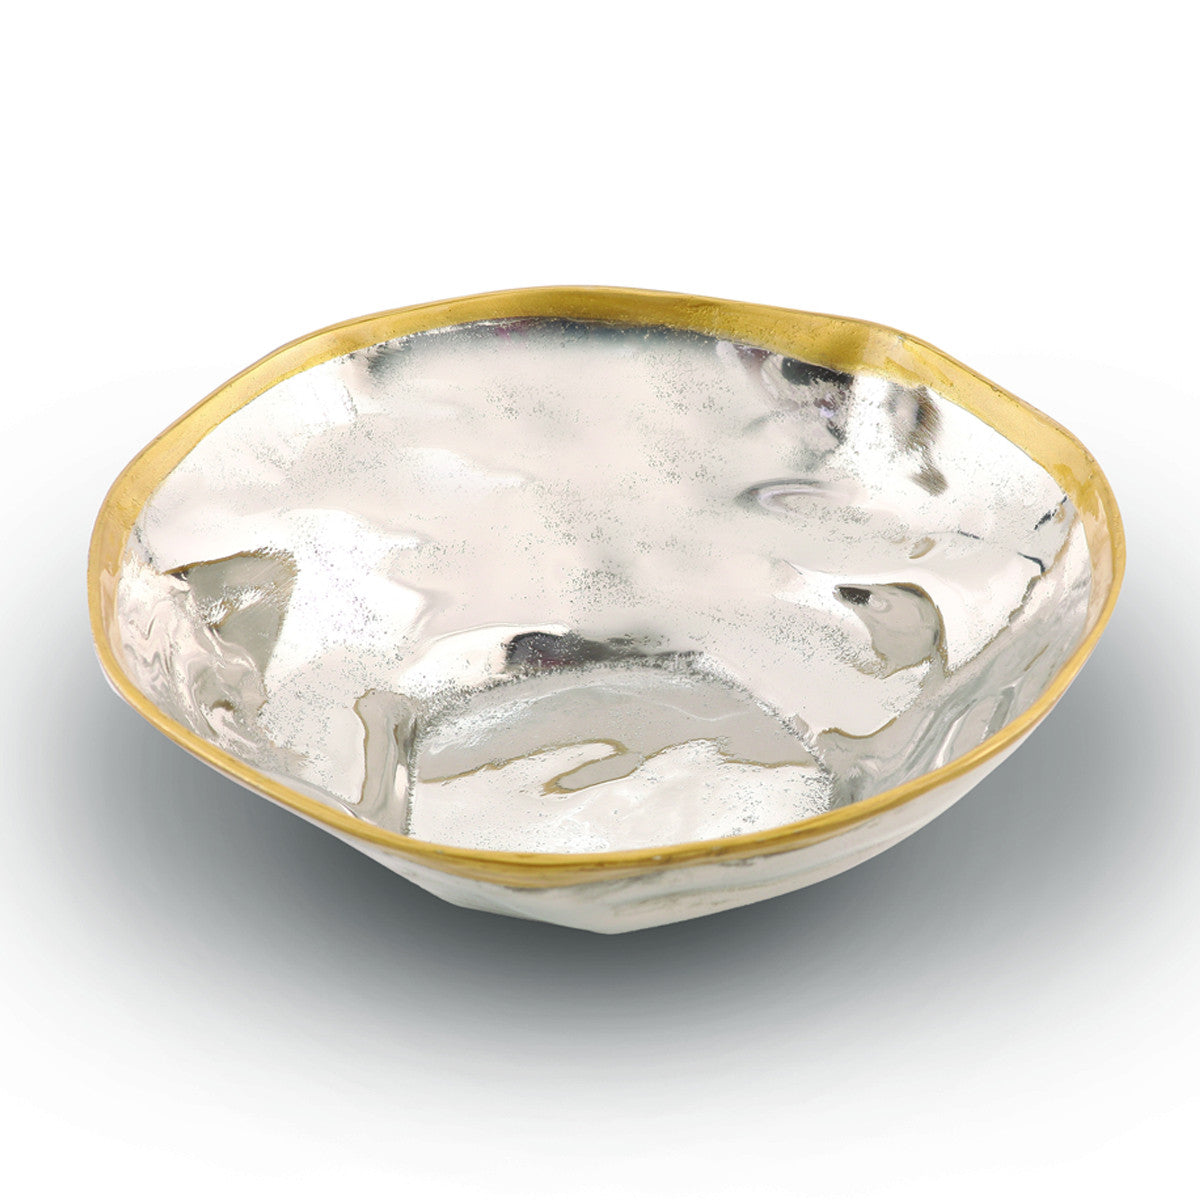 Soiree Serving Bowl